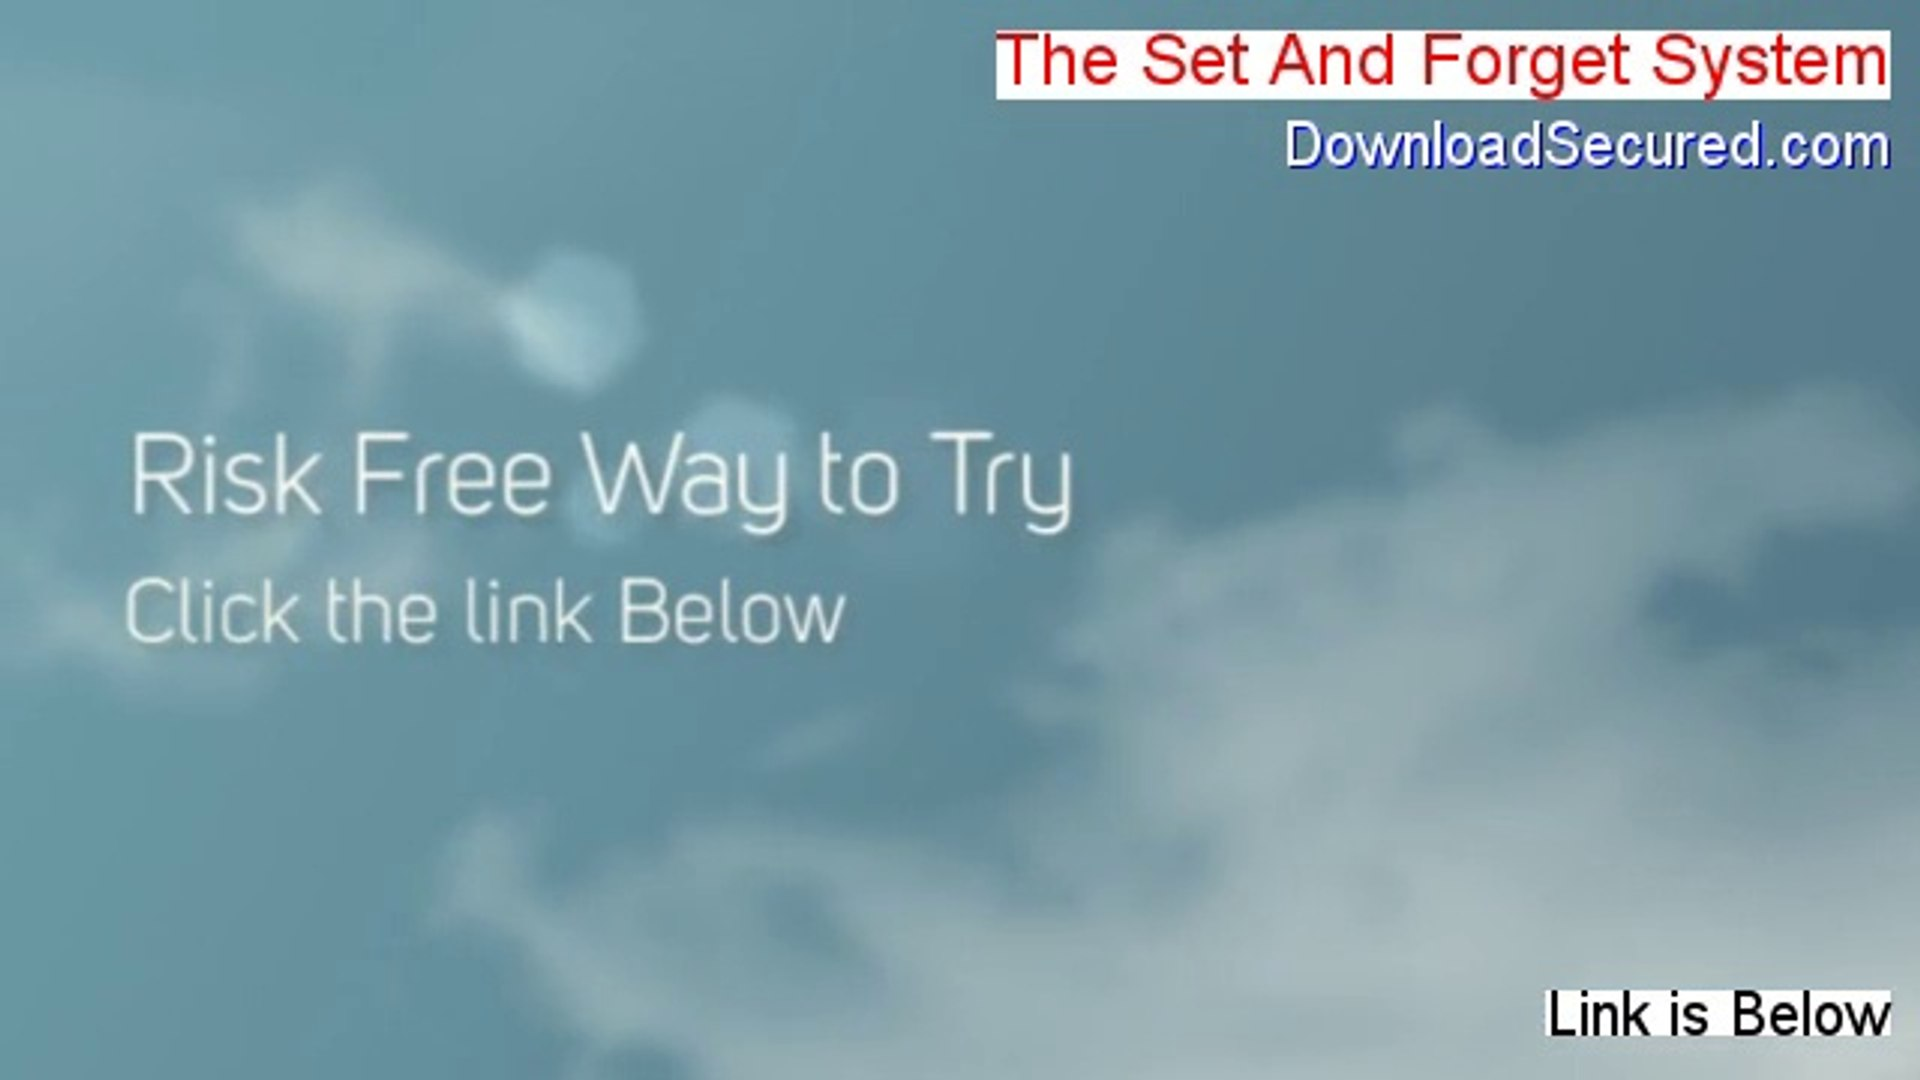 The Set And Forget System Review - the forex set and forget profit system [2014]